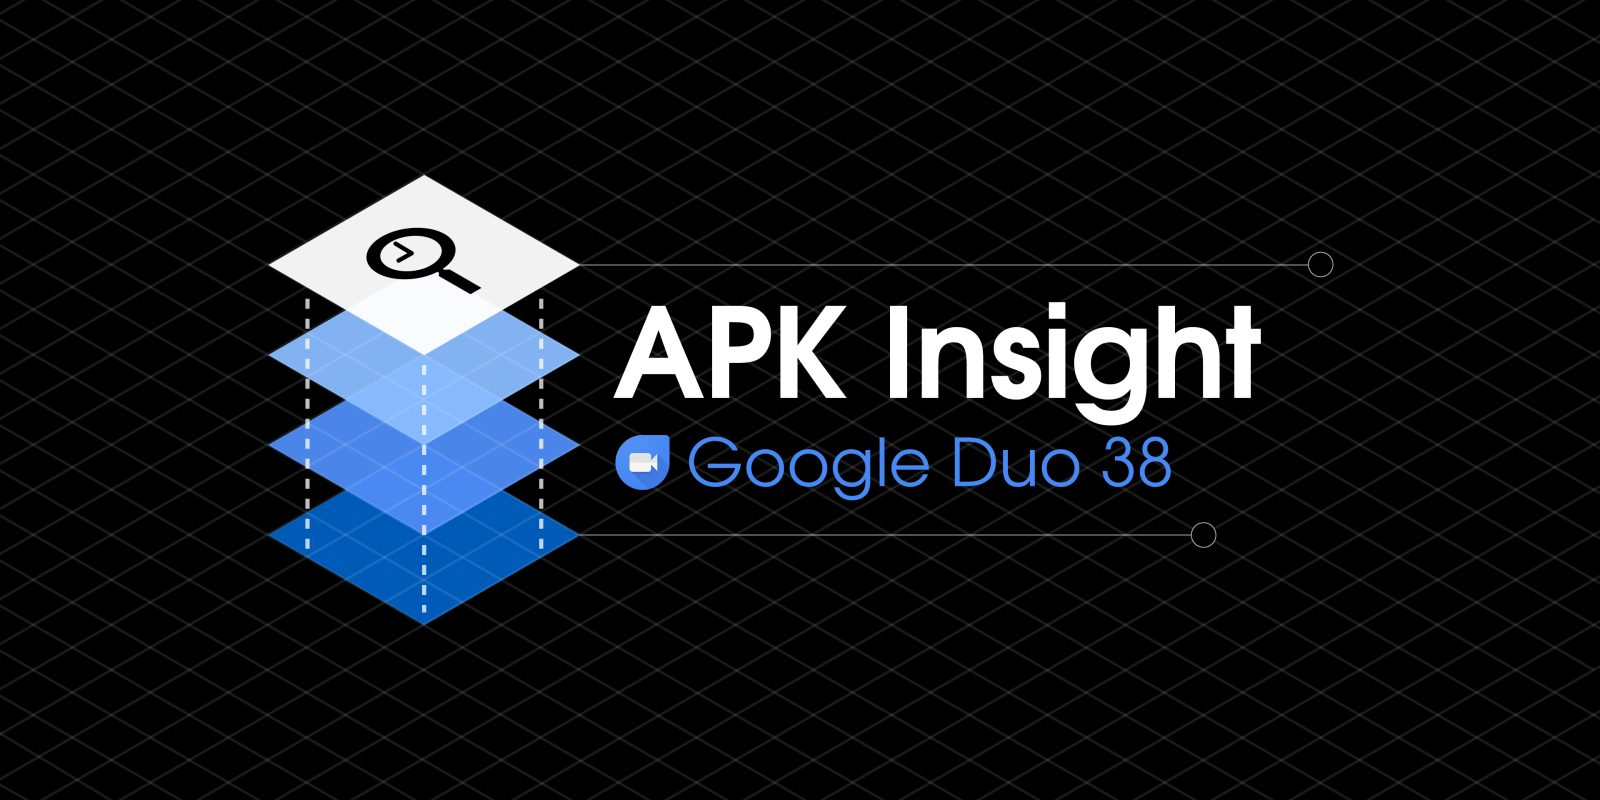 Google Duo 38 adds Material Theme, removes screen sharing & vibration toggle [APK Insight]